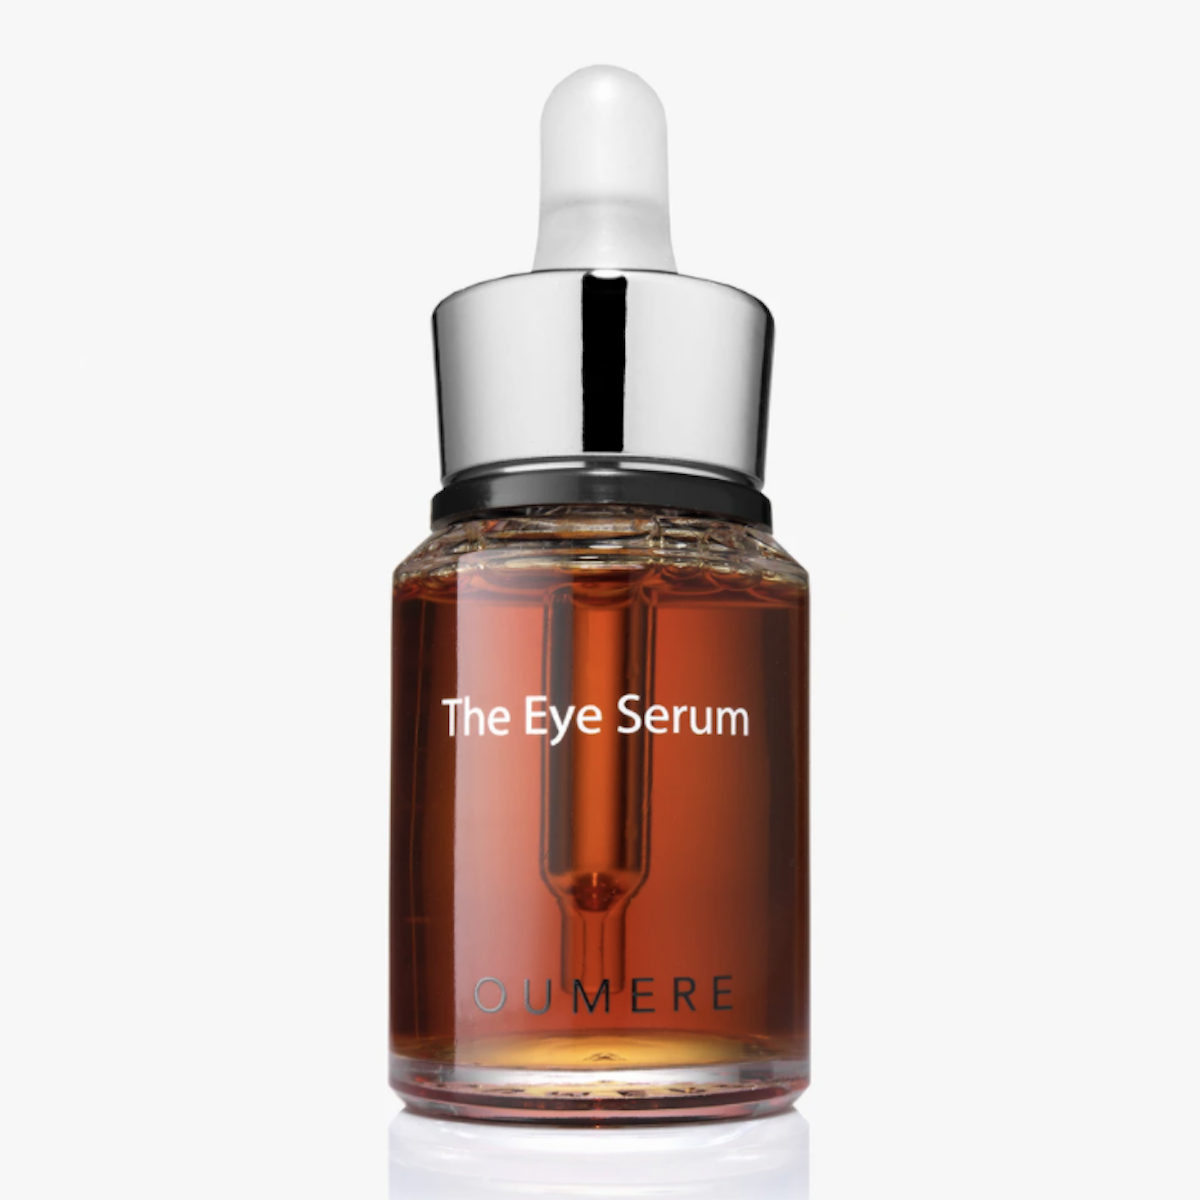 Oumere The Eye Serum with dropper